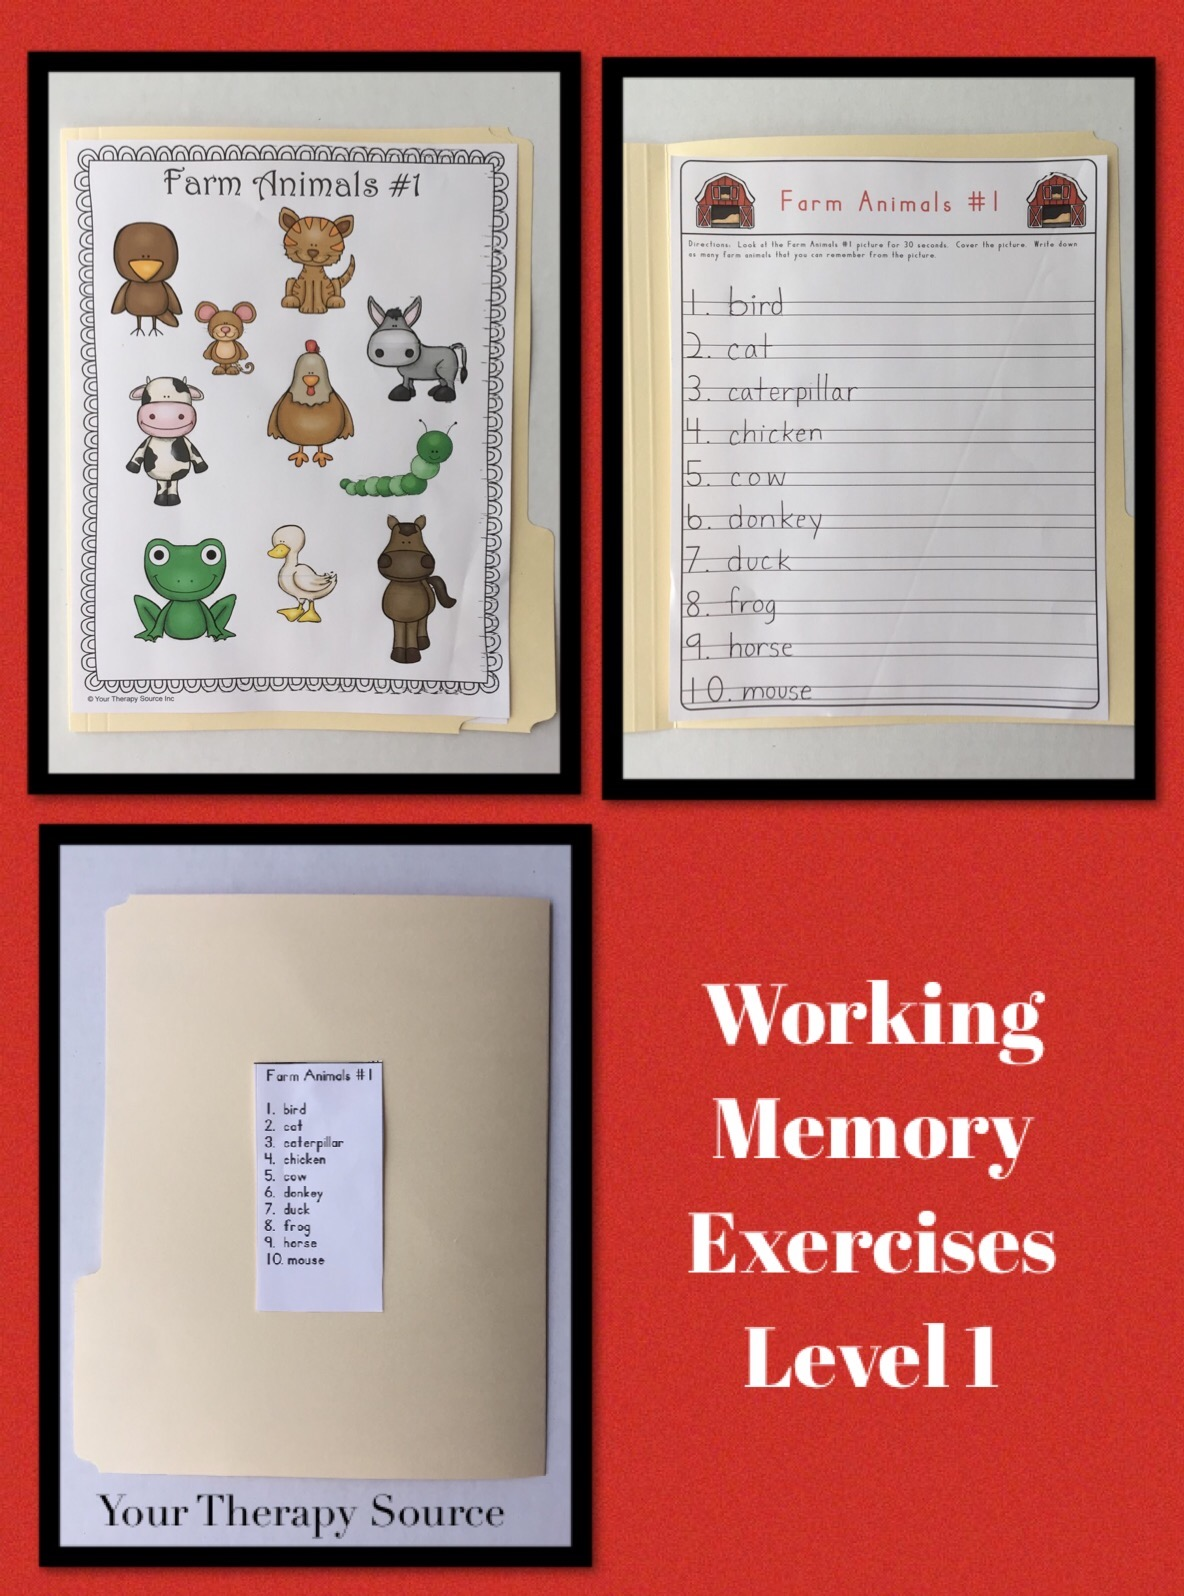 working memory level 1 freebie from https://yourtherapysource.com/workingmemory.html